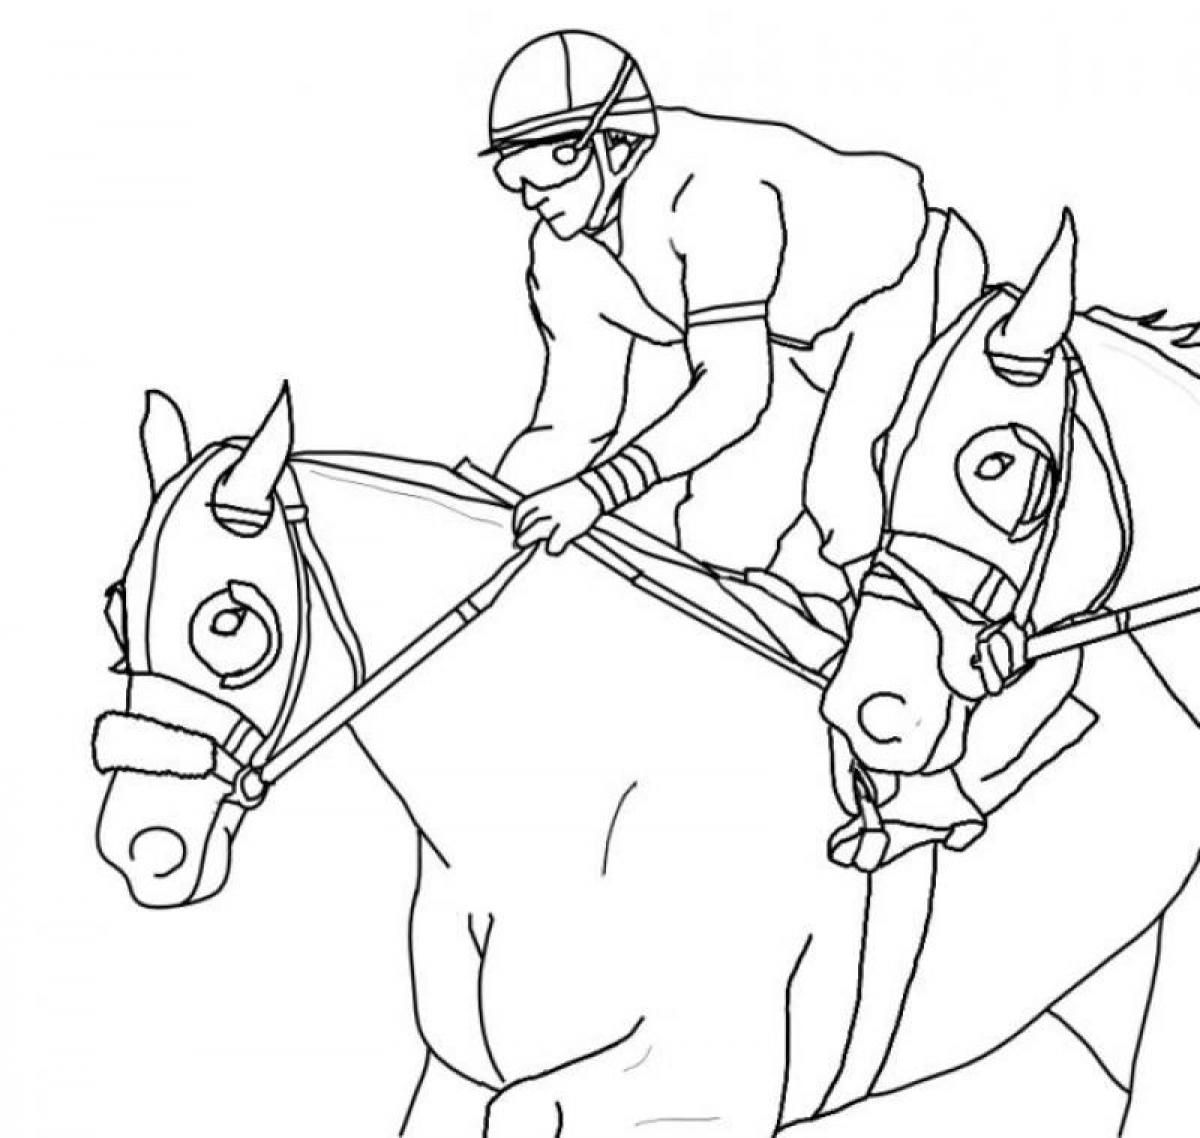 A Rider and a Barbie Horse Coloring Page